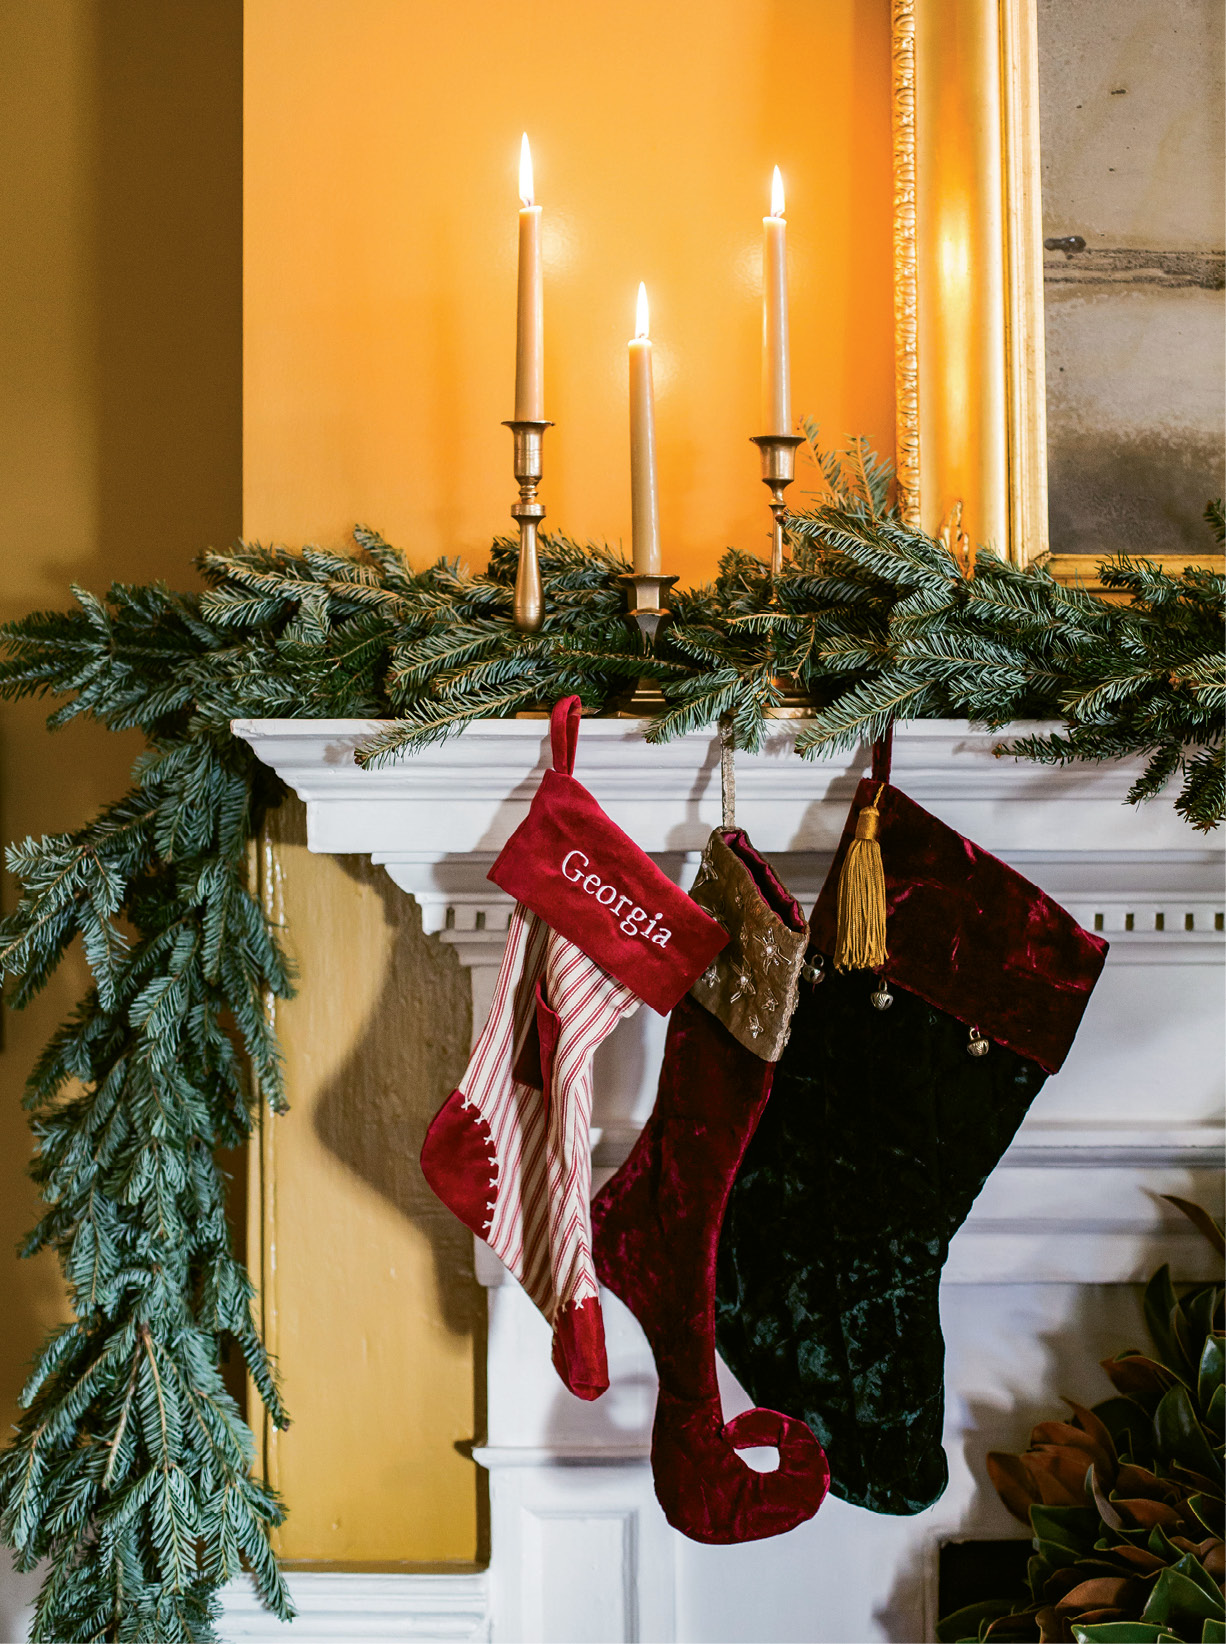 "HANG WITH CARE: Simply weaving garlands amid mantel decorations works for Tara, as does lighting candles. ""Just don't burn scented candles around food,"" she says."